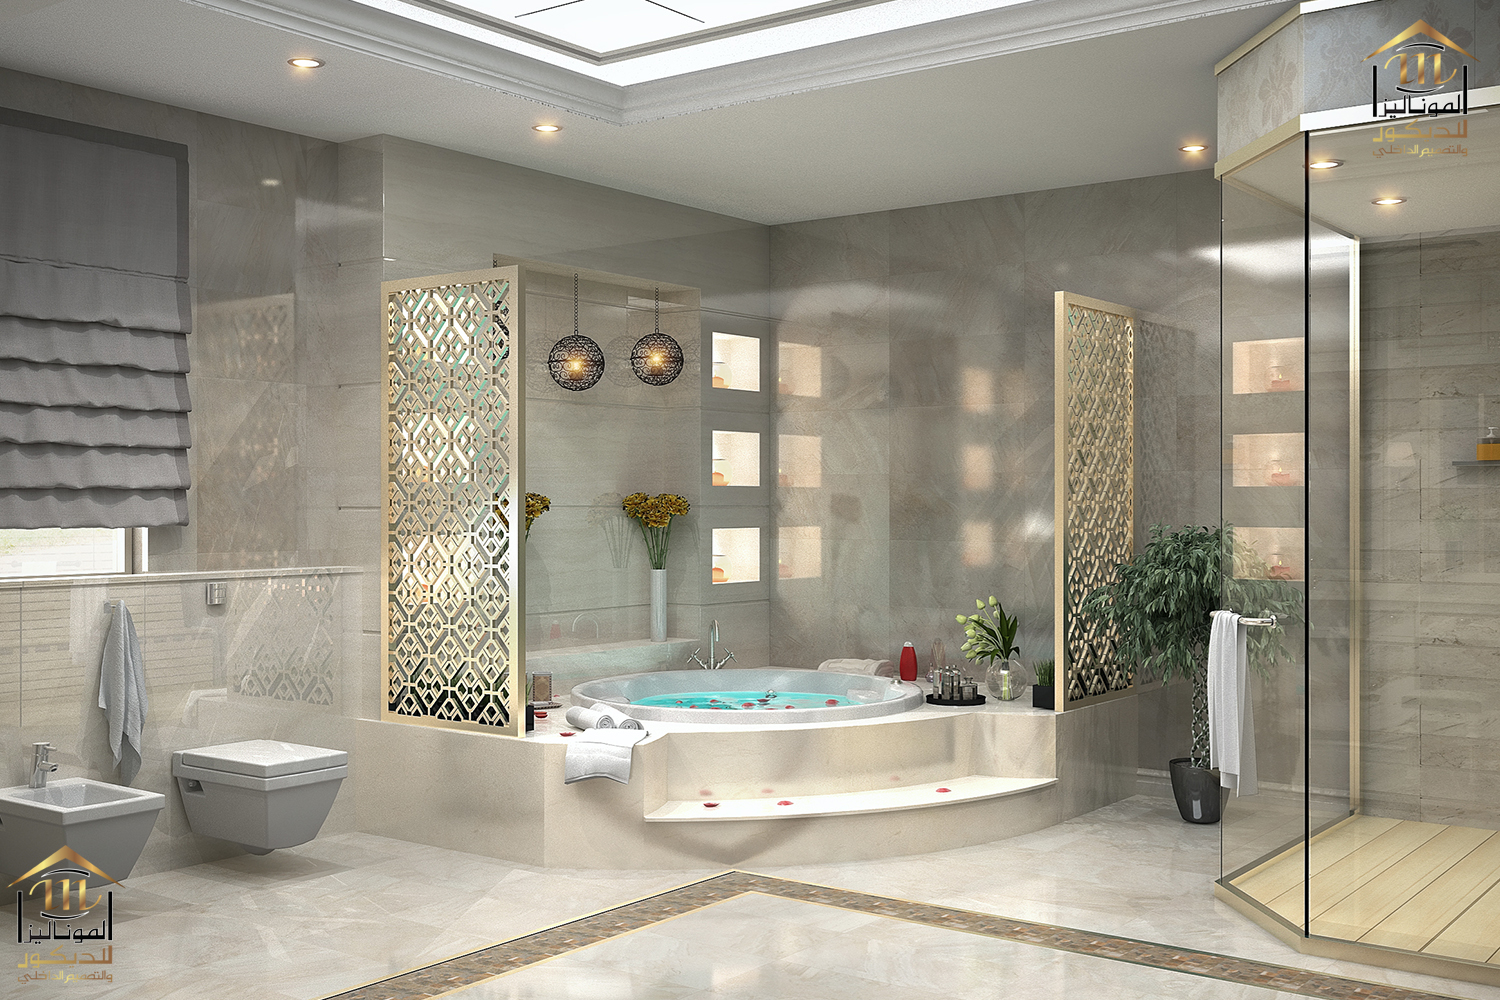 almonaliza group_decoration&interior design_bathrooms (11).jpg